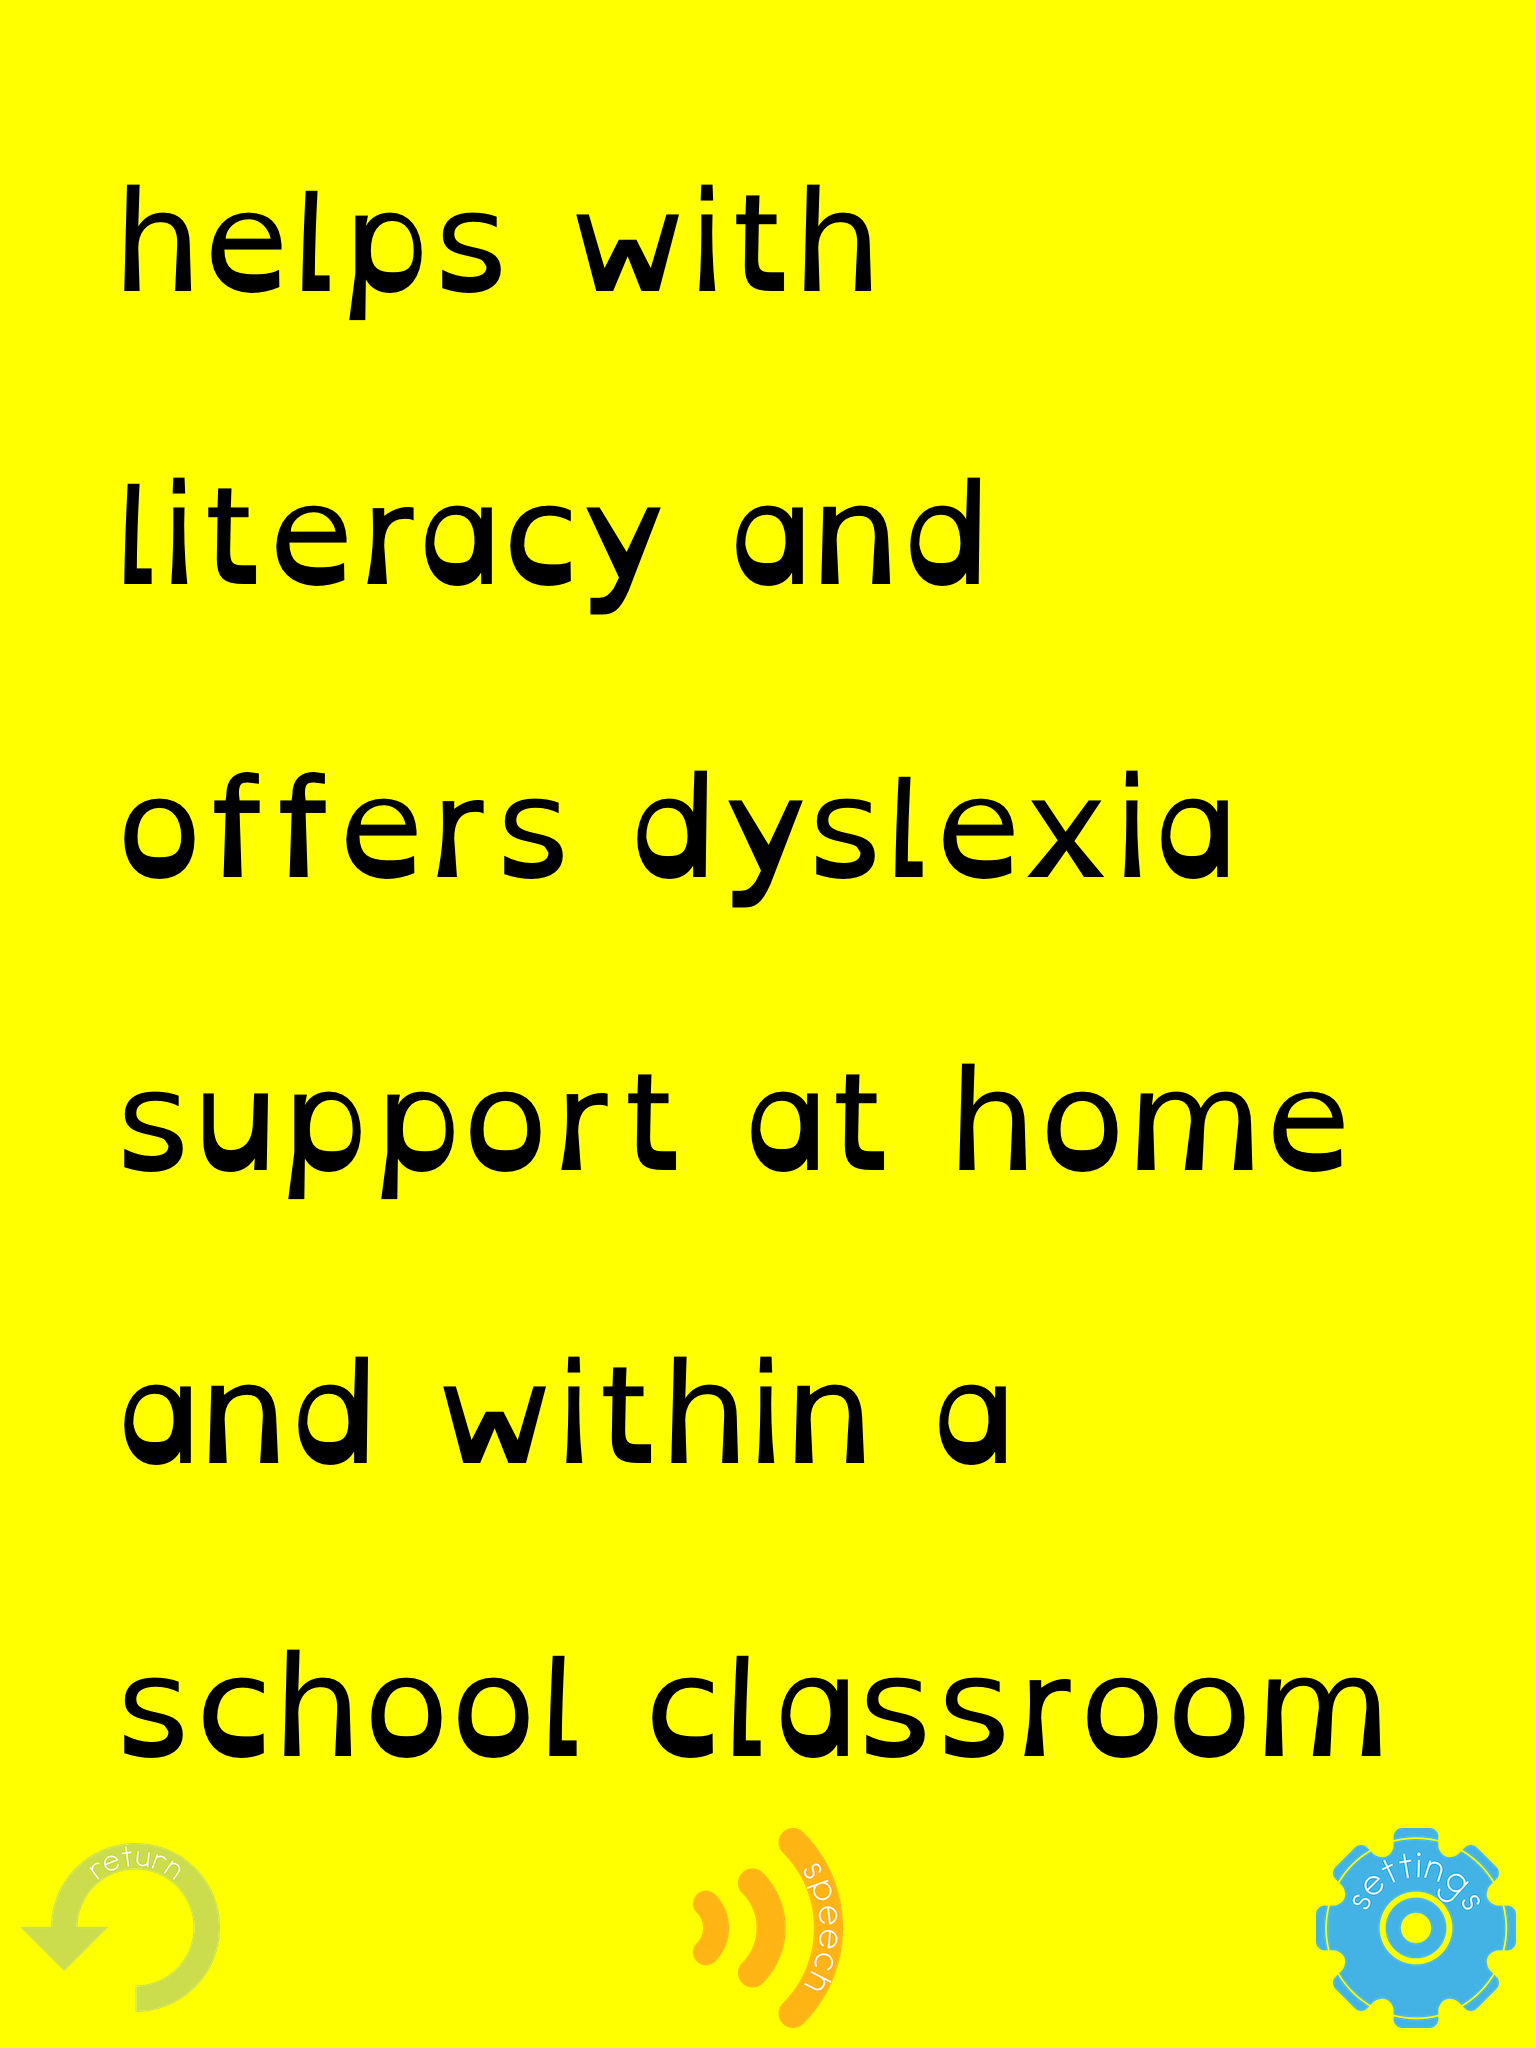 Helps with literacy and offers dyslexia support at home and within a primary school classroom.